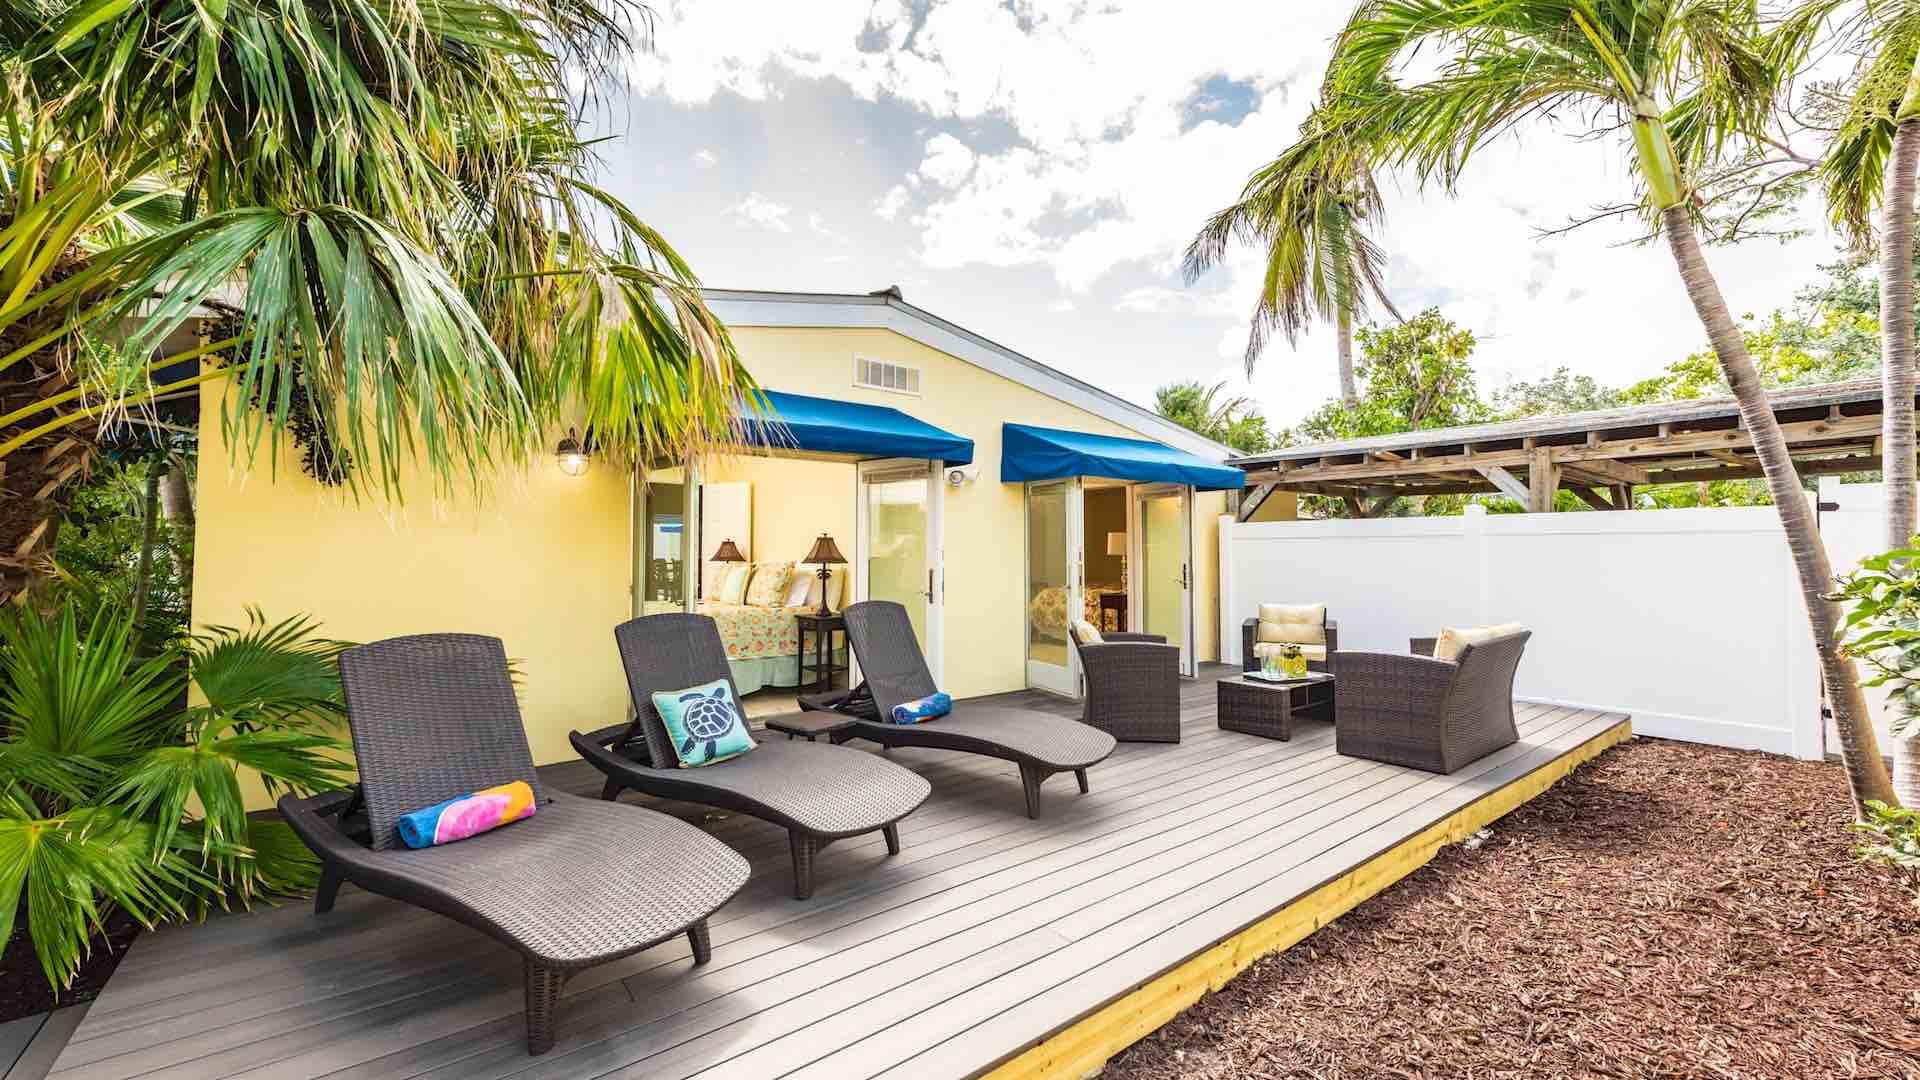 The sun deck has chaise lounges for laying out or relaxing...